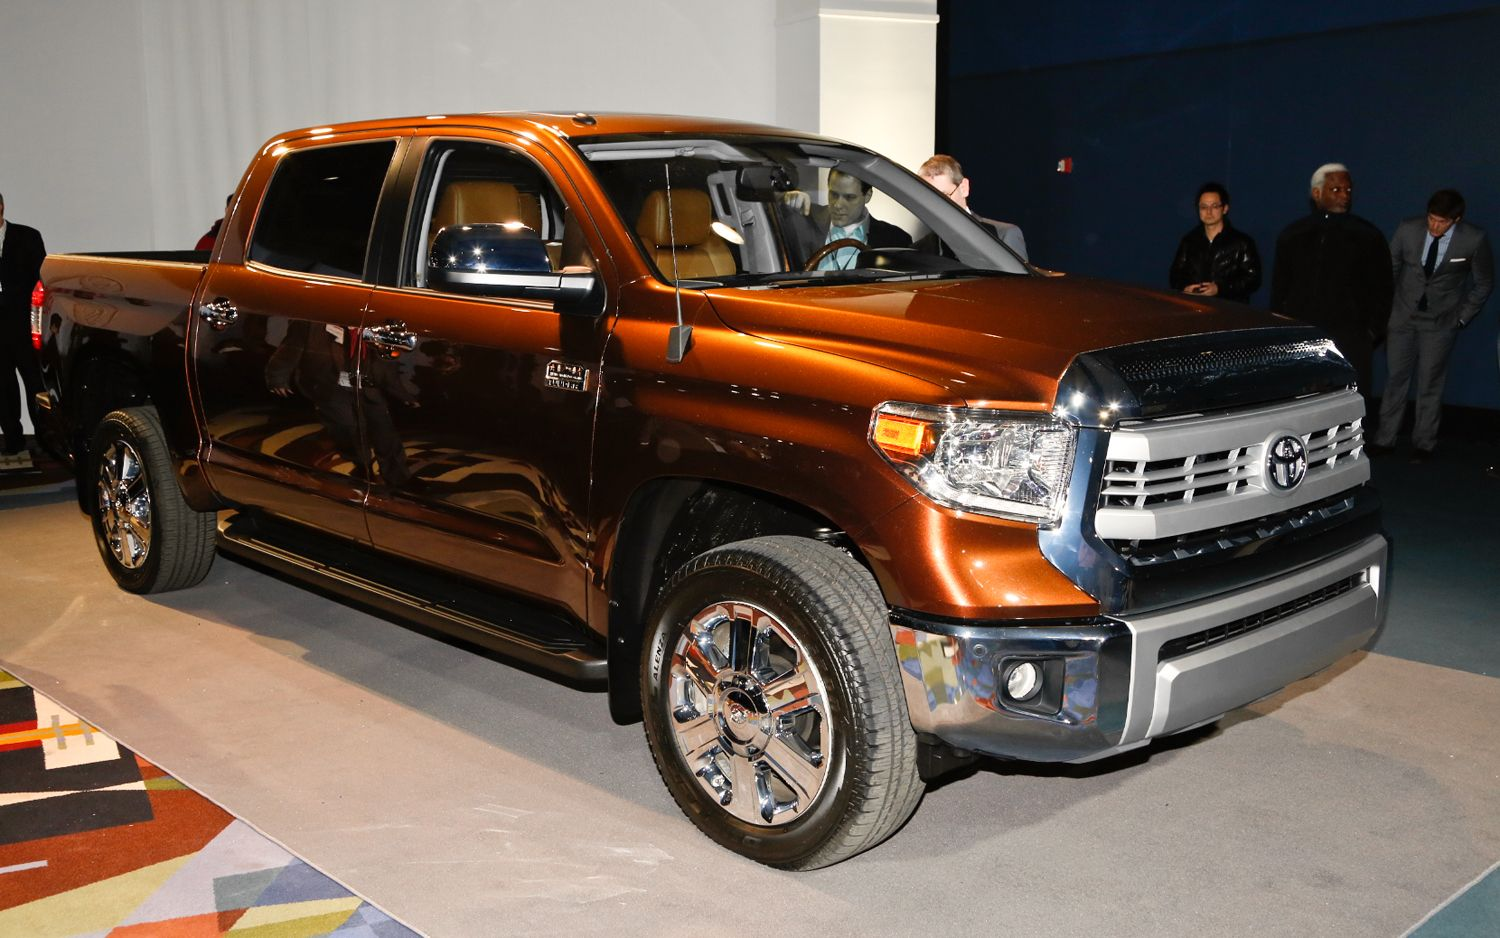 Pin On Toyota Tundra Parts And Accessories